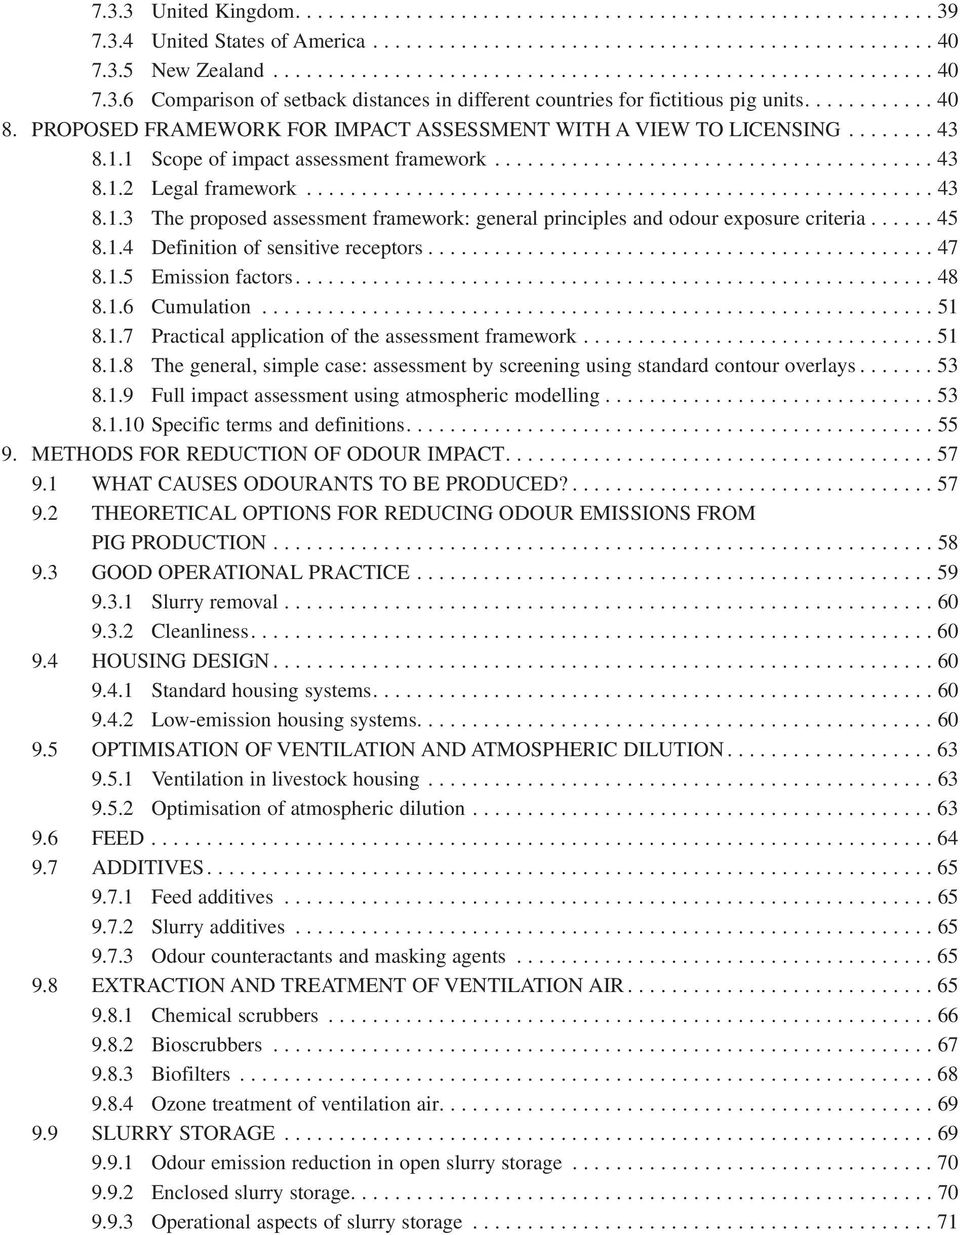 ........................................................ 43 8.1.3 The proposed assessment framework: general principles and odour exposure criteria...... 45 8.1.4 Definition of sensitive receptors.